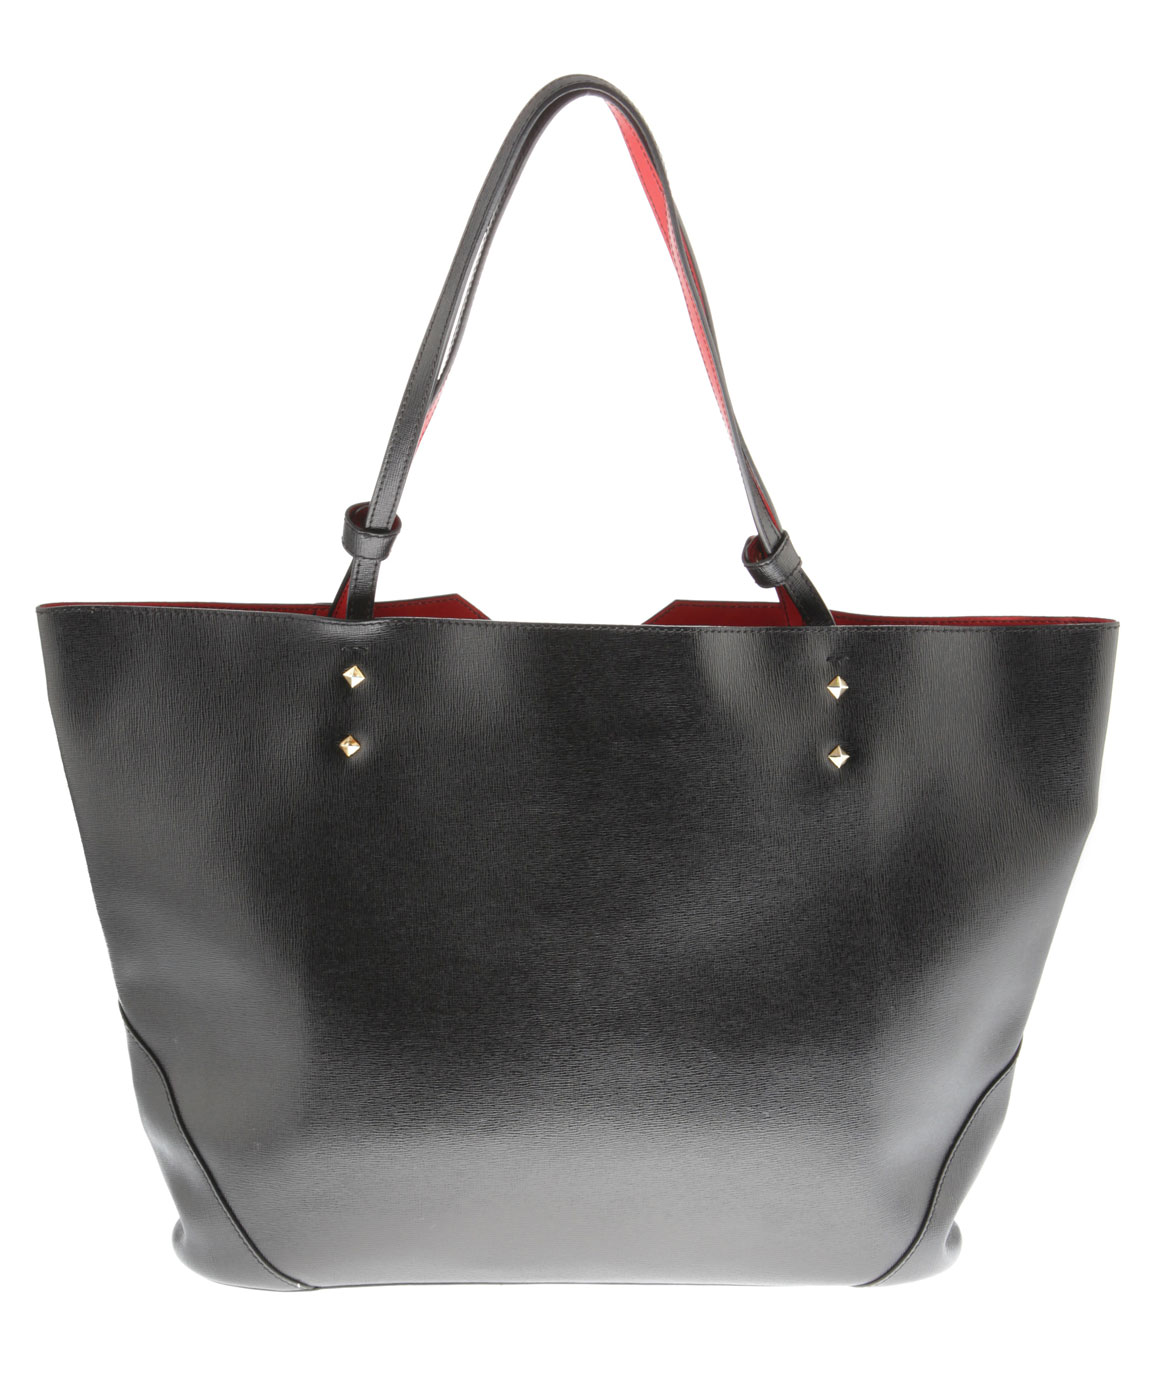 Veronica Tote in Black Saffiano Leather